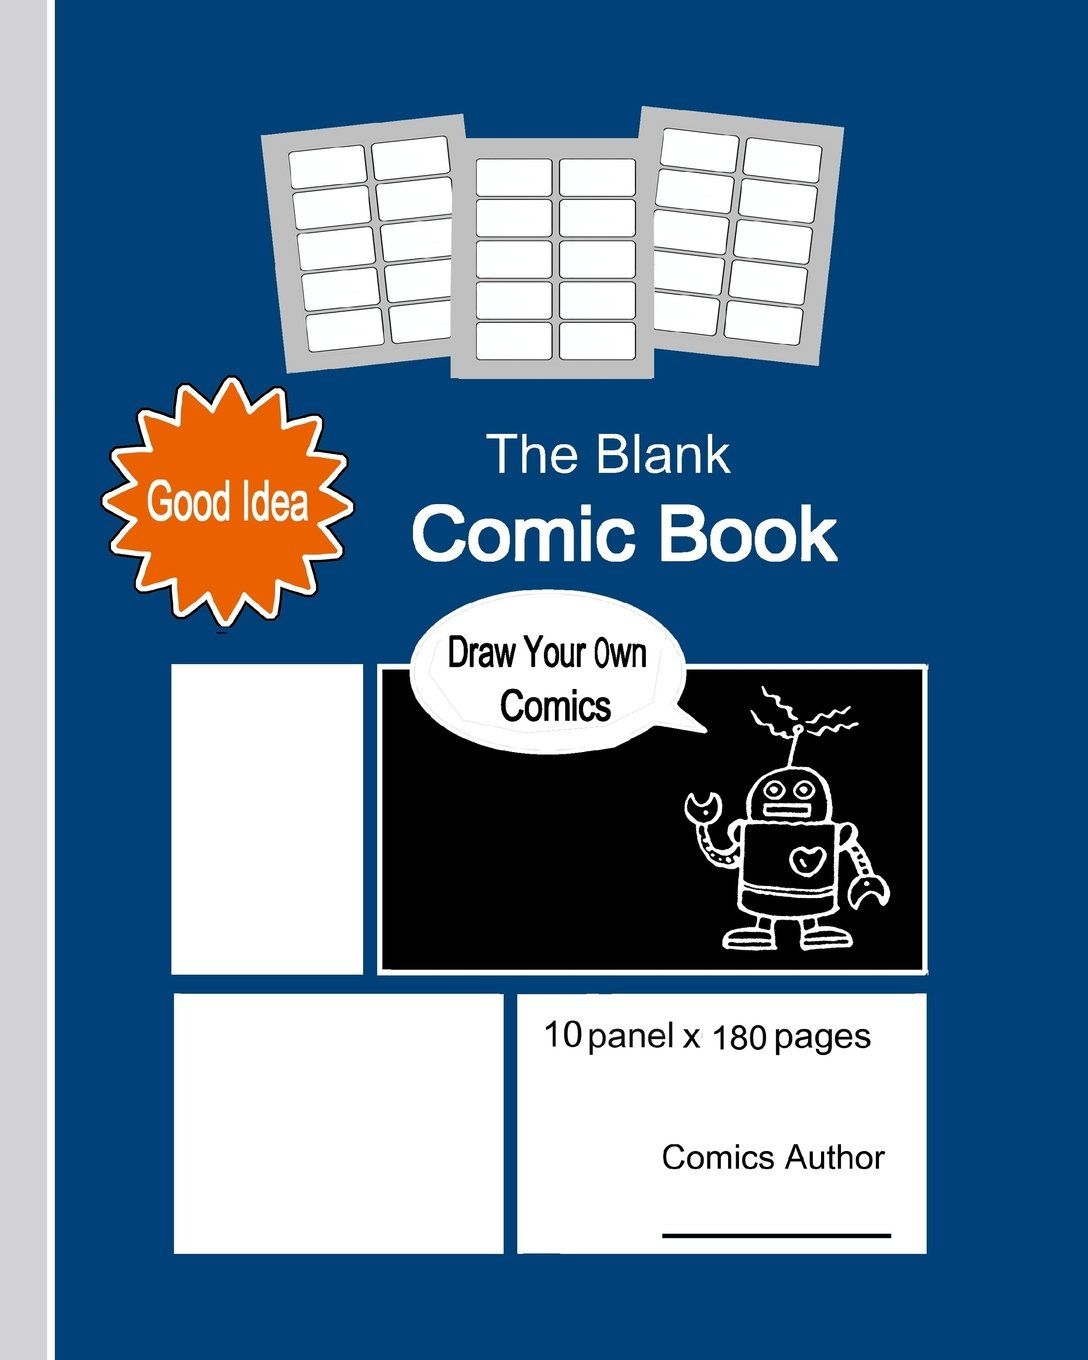 Read Online The Blank Comic Book: Great Book With 8 x 10 Inches (20.32 x 25.4 cm) In Size, About The Size Of A4, Is For Create Your Own Comics, Design Sketch And ... Graduation Gift, School Award. (Volume 14) ebook